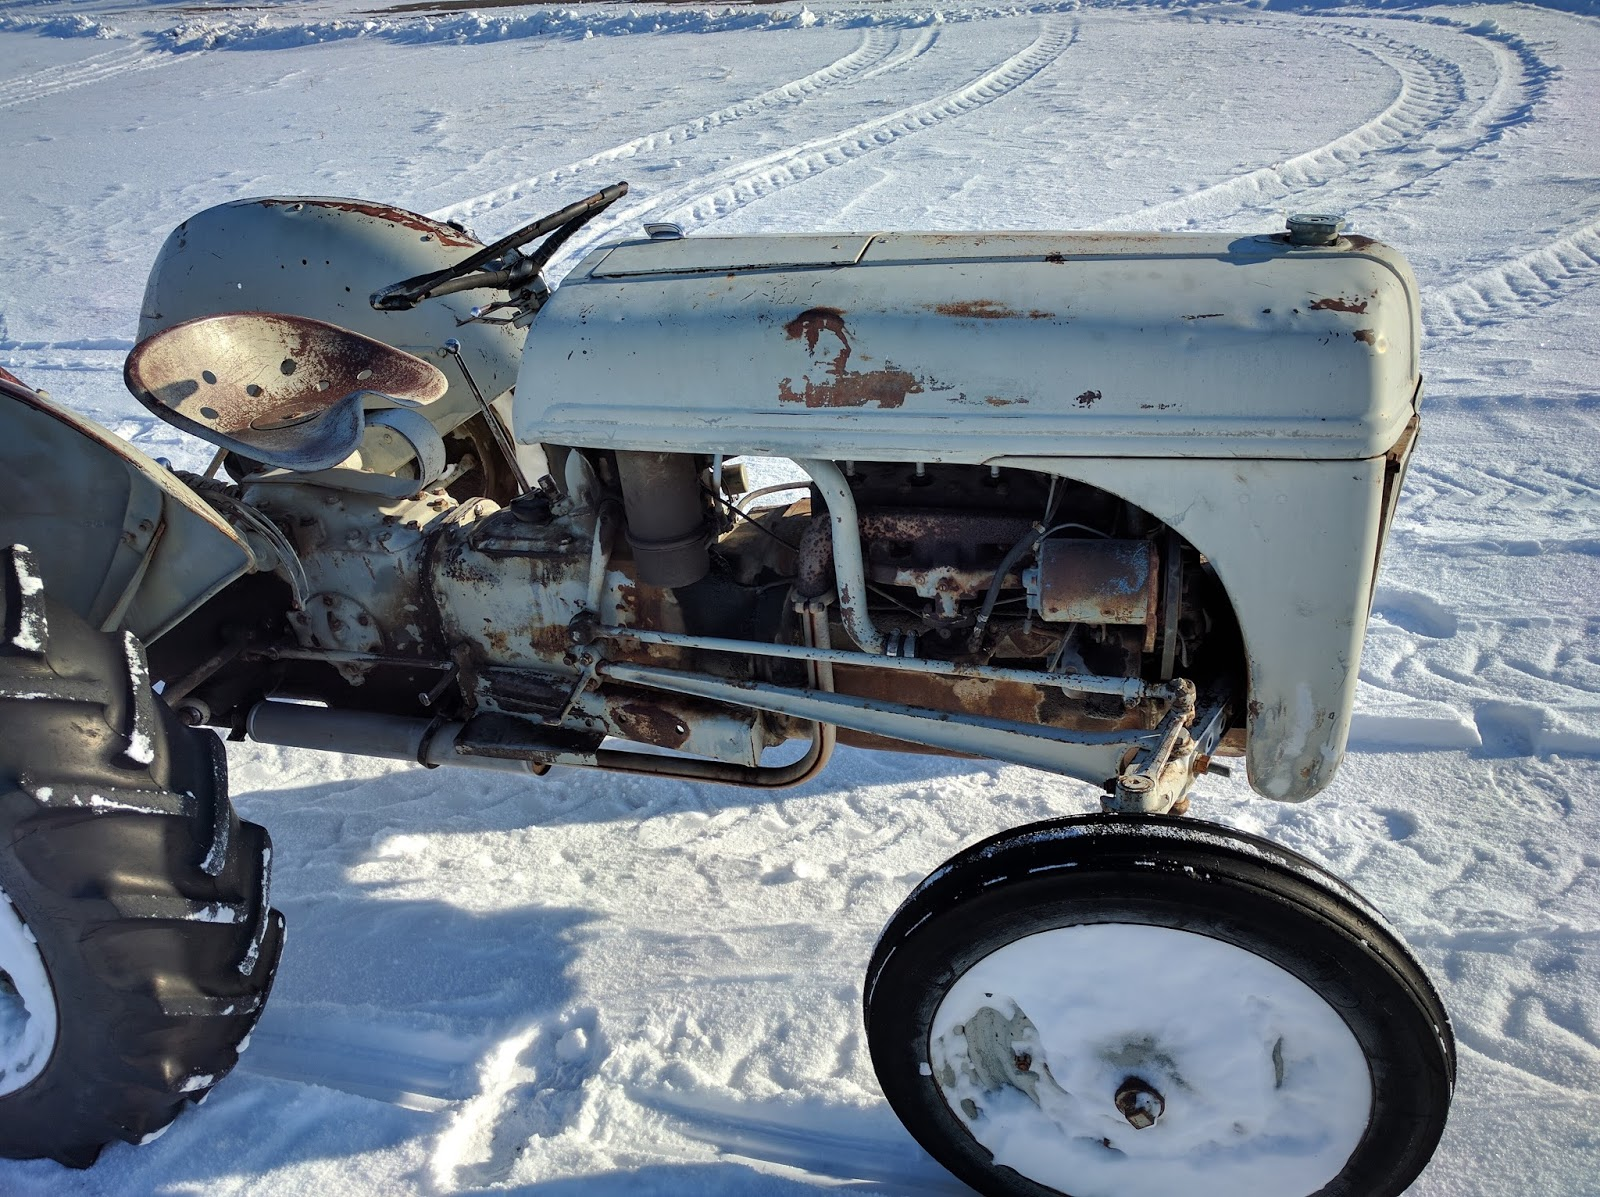 1939 Ford 9N Project (Tractor) - Ars Technica OpenForum